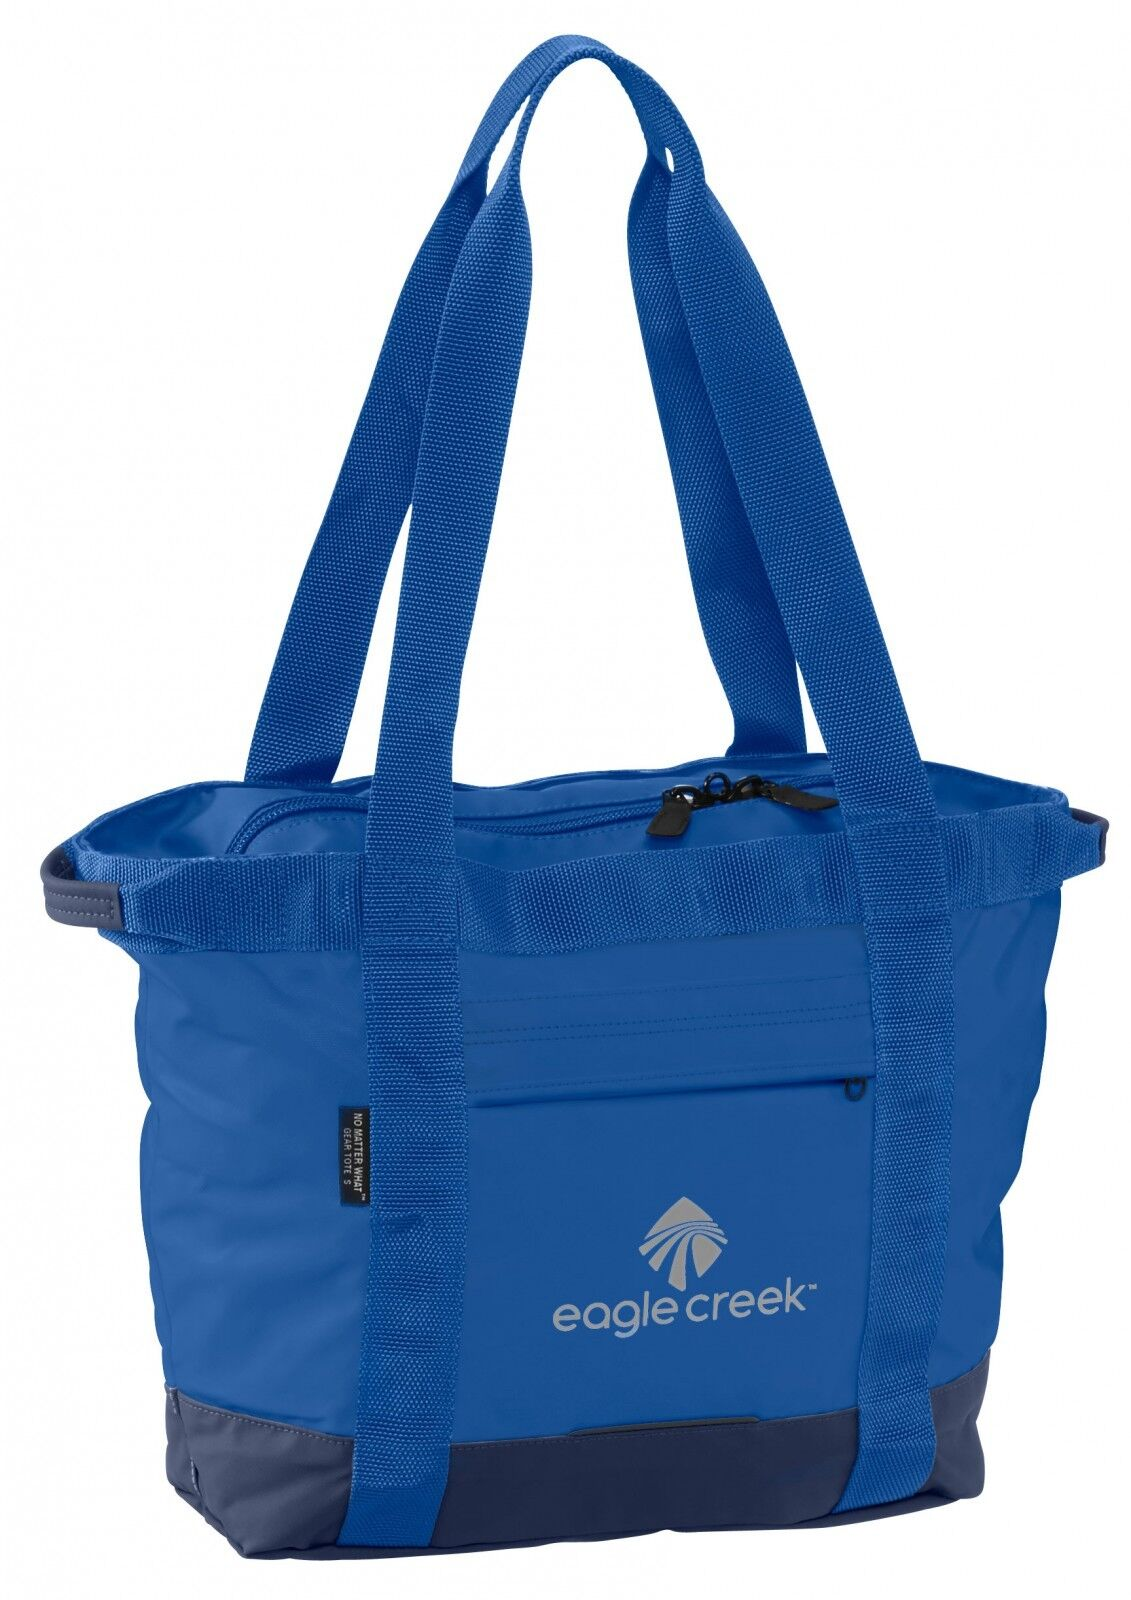 Eagle creek Sac Shopper No Matter What Gear Tote S Cobalt